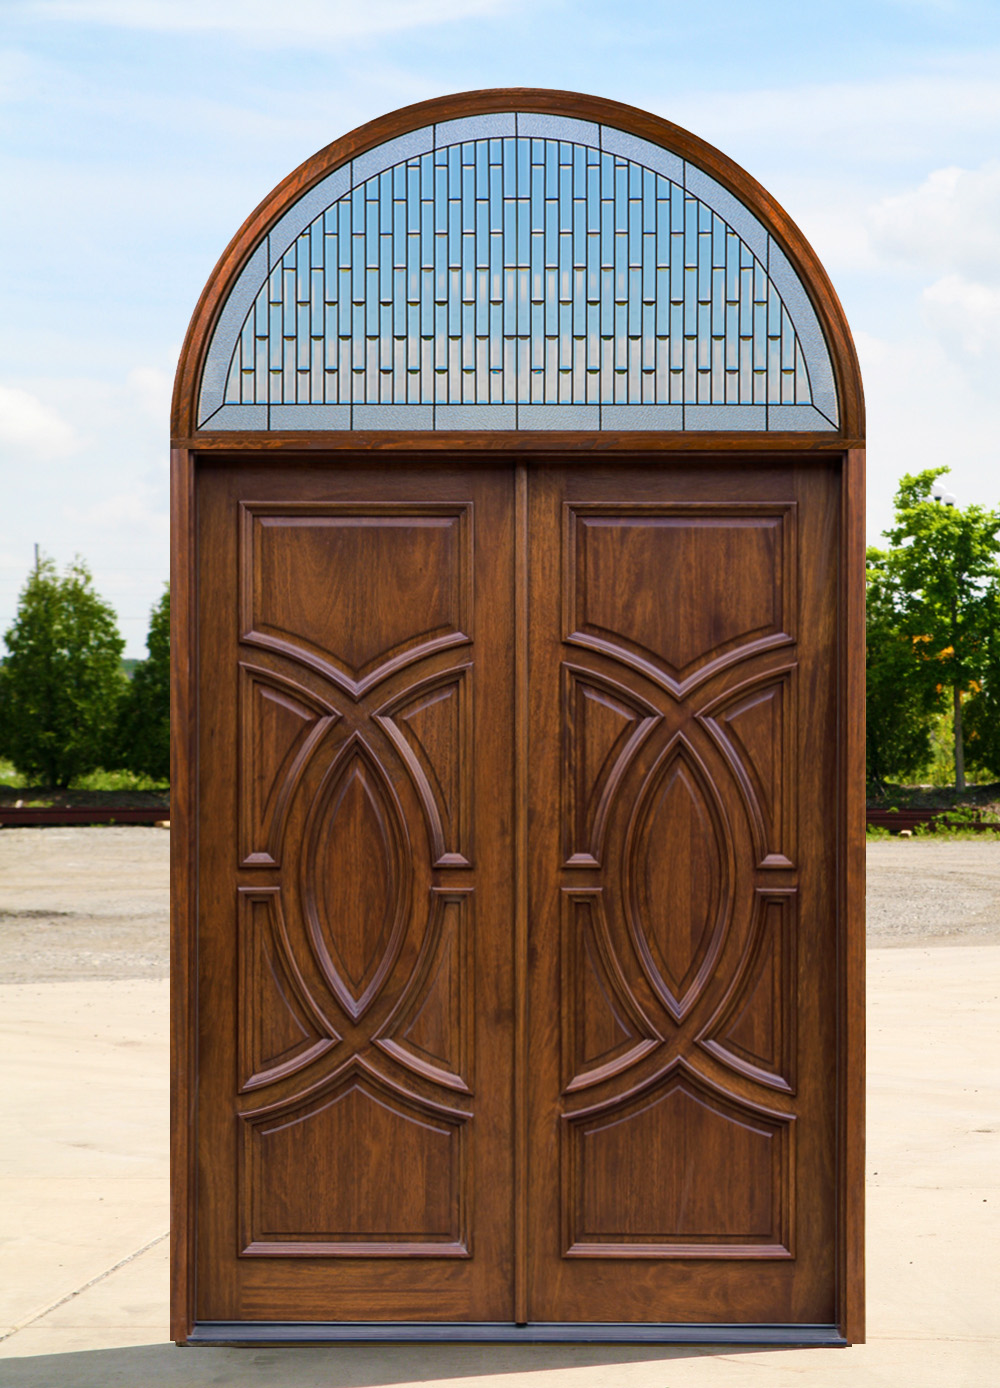 Exterior double doors with arched transom for Exterior front entry double doors